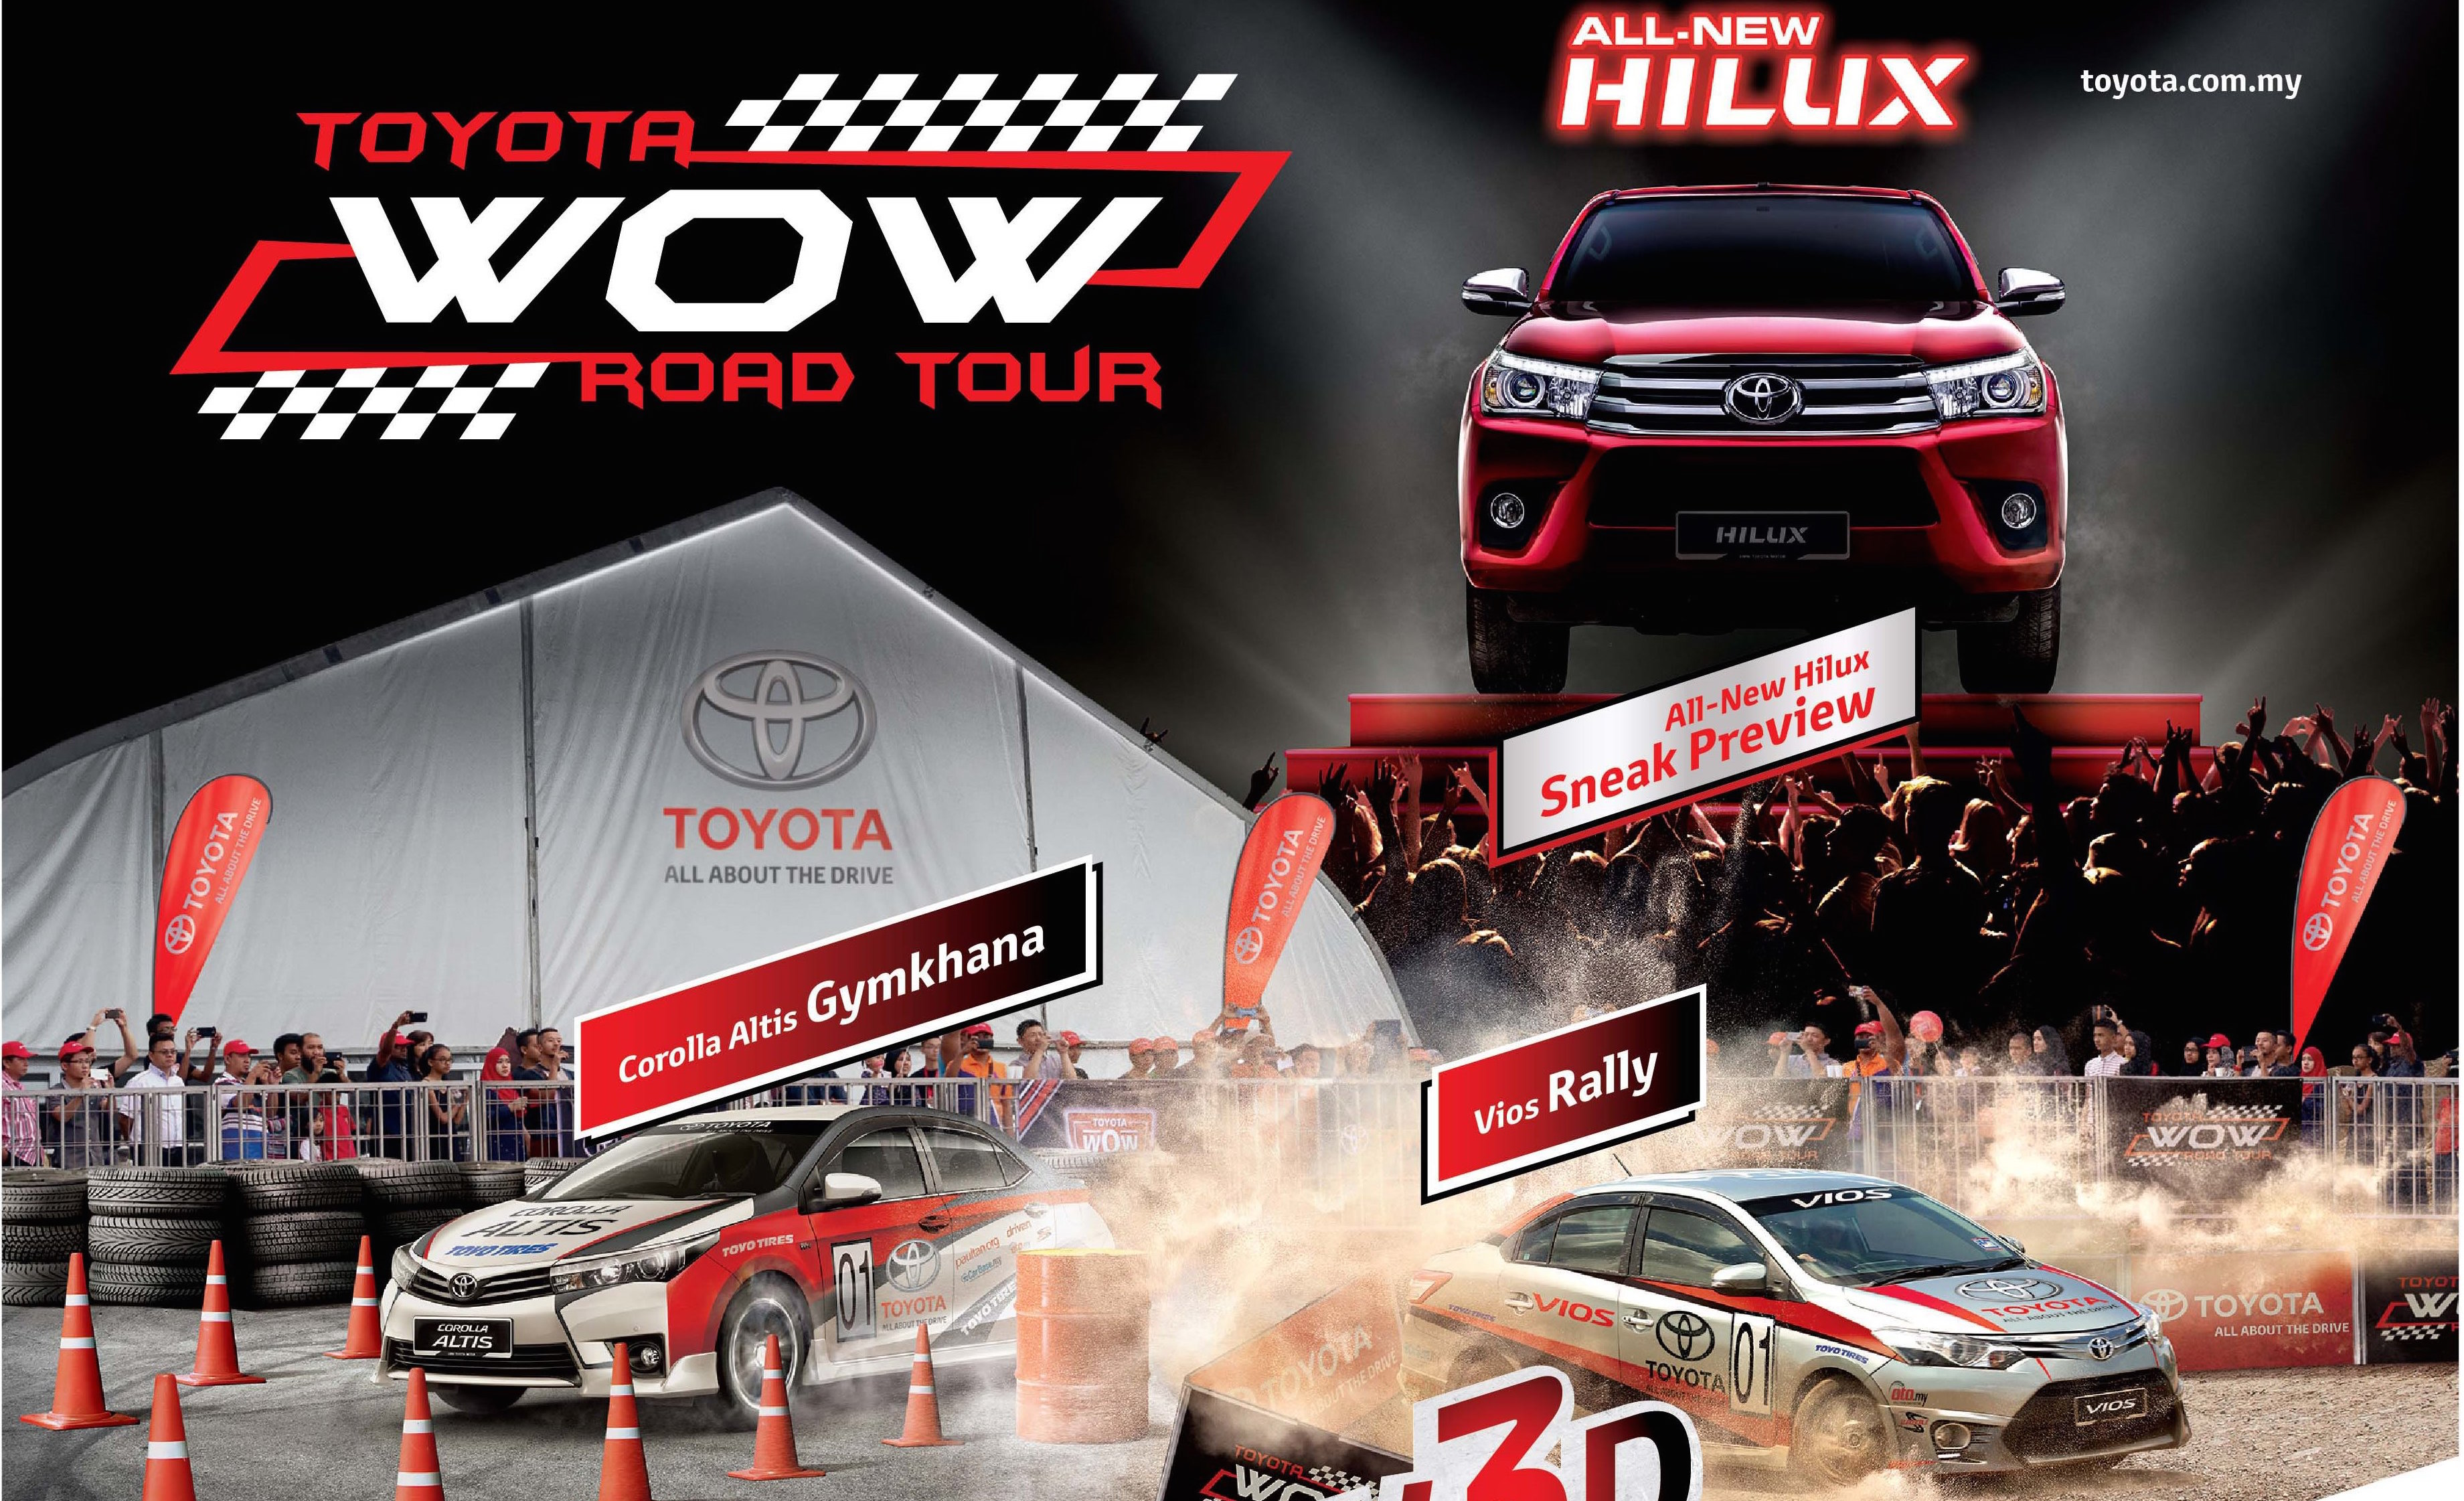 toyota wow road tour returns will preview new hilux. Black Bedroom Furniture Sets. Home Design Ideas